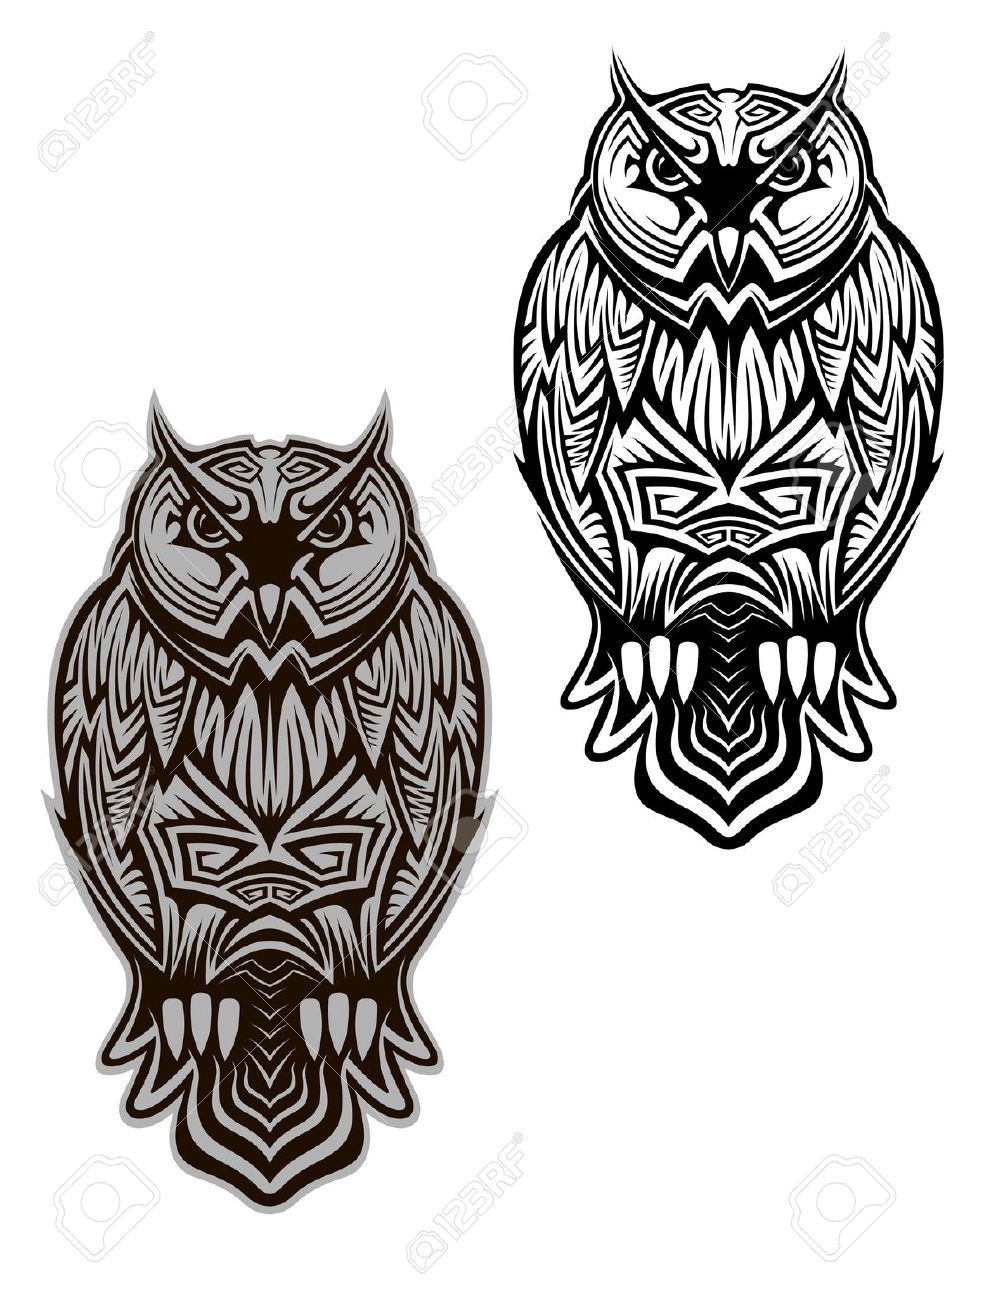 Owl bird in tribal style for tattoo or another design | CAT ...